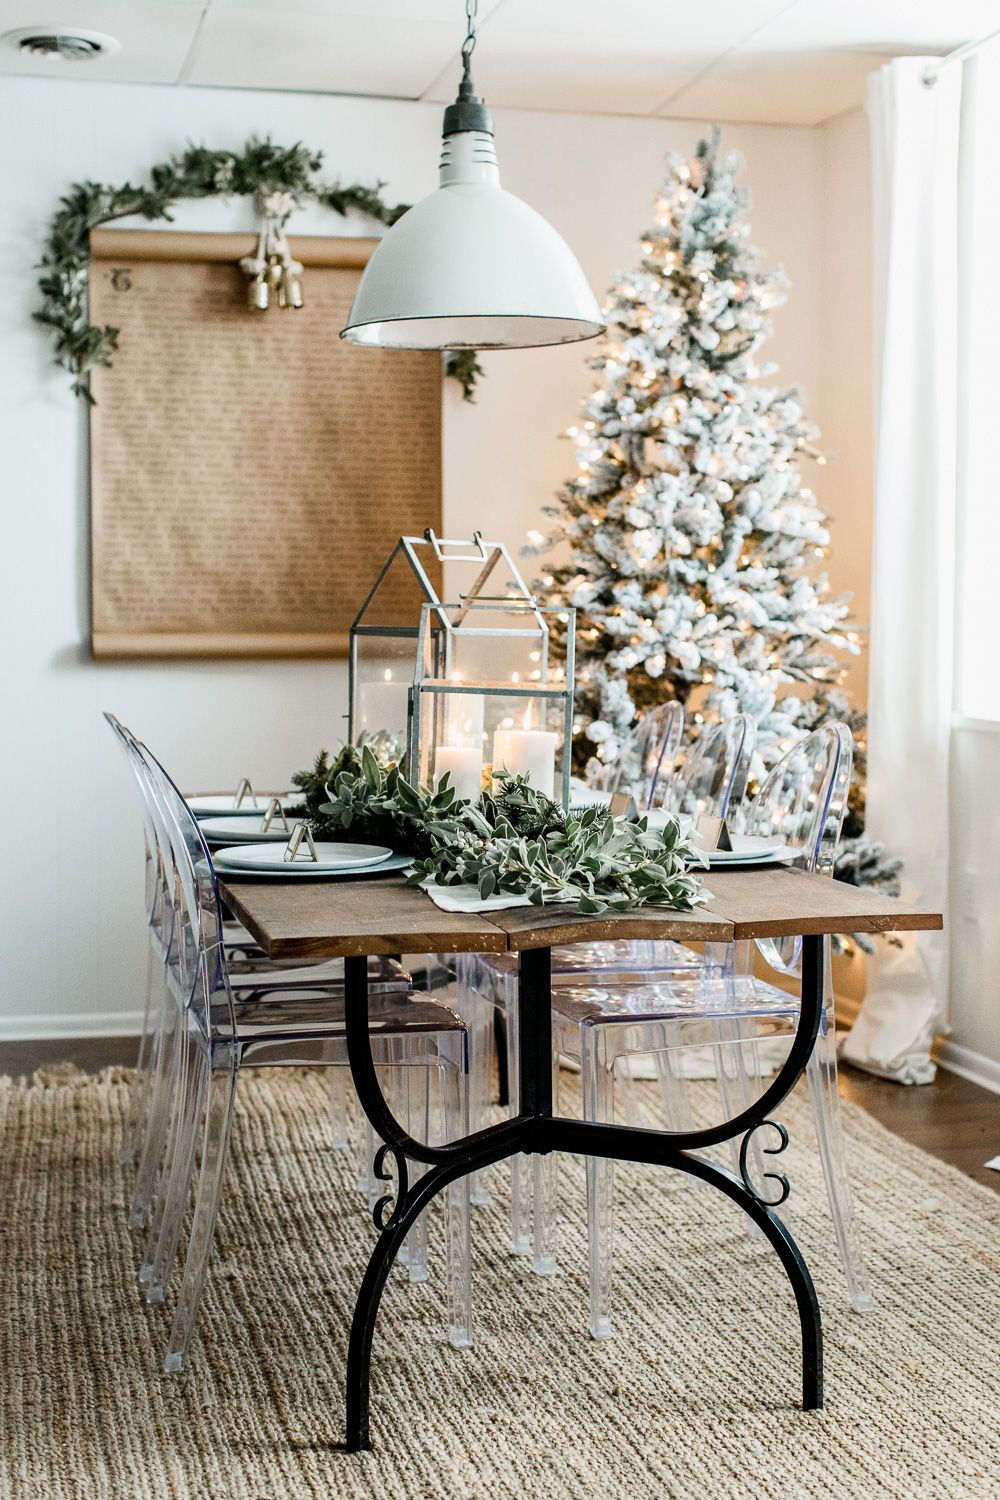 Christmas Hearth.Hearth Hand With Magnolia Christmas Tablescape